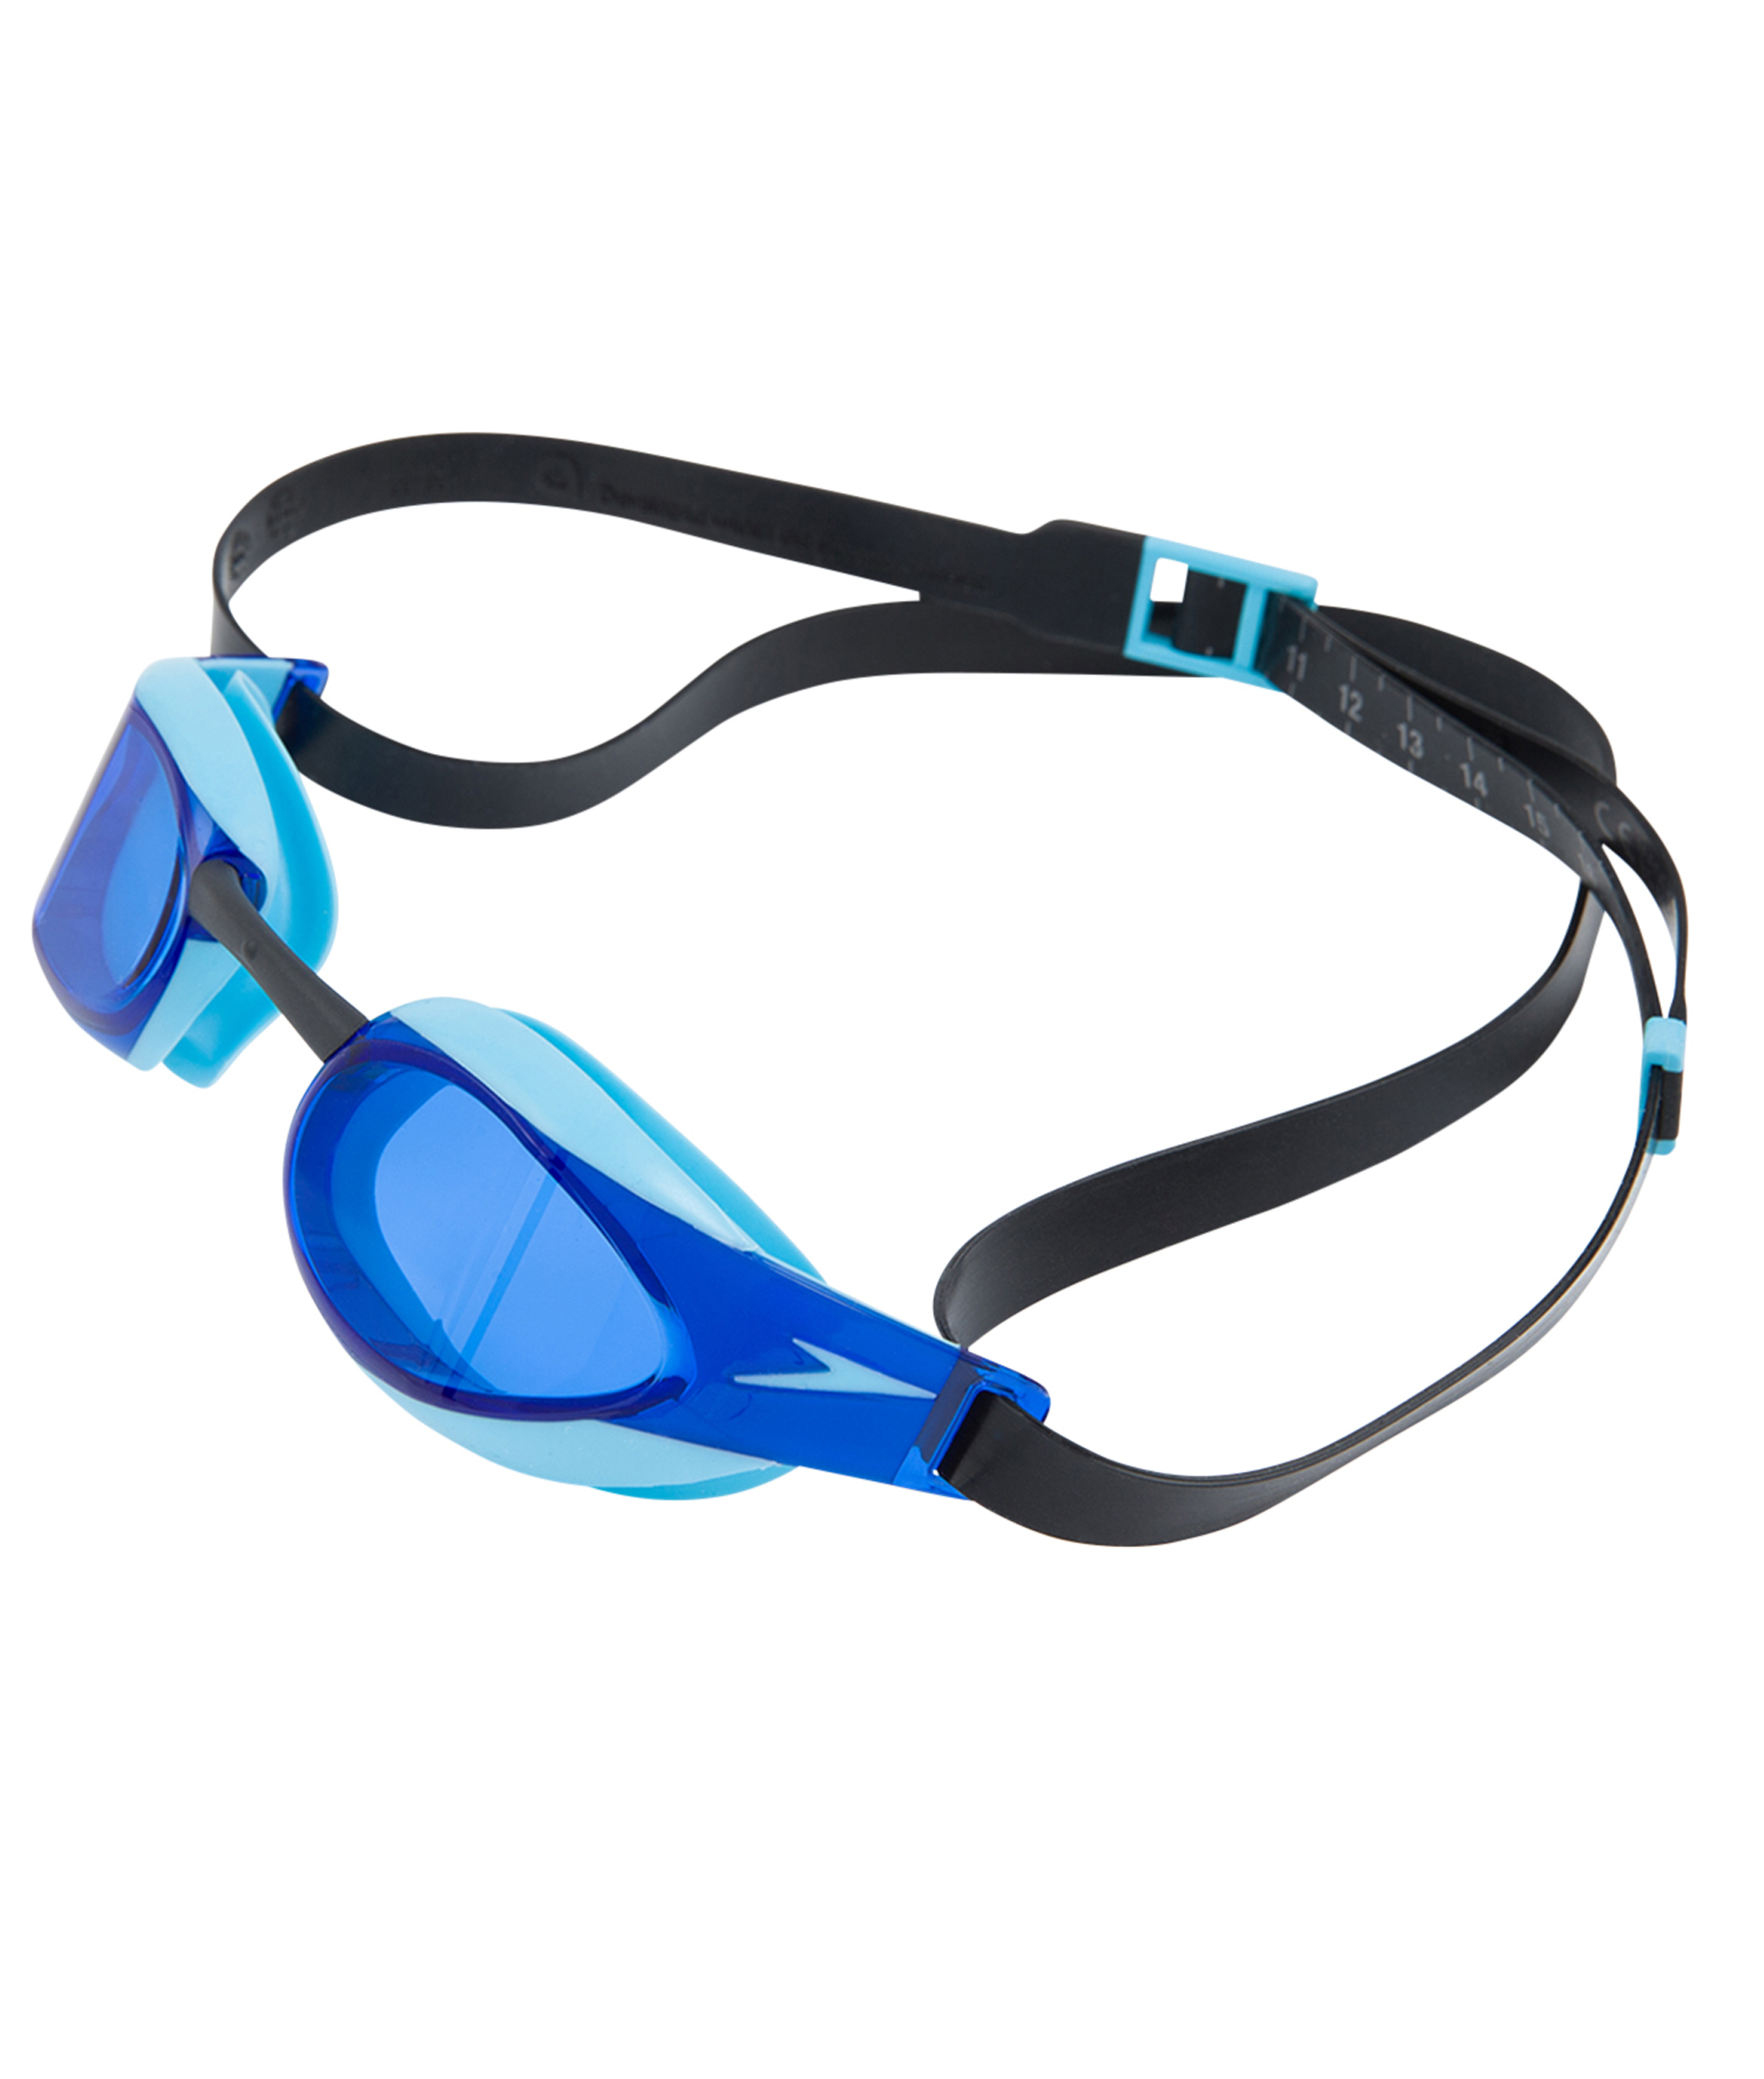 Speedo Fastskin Elite Goggle - Black/Blue